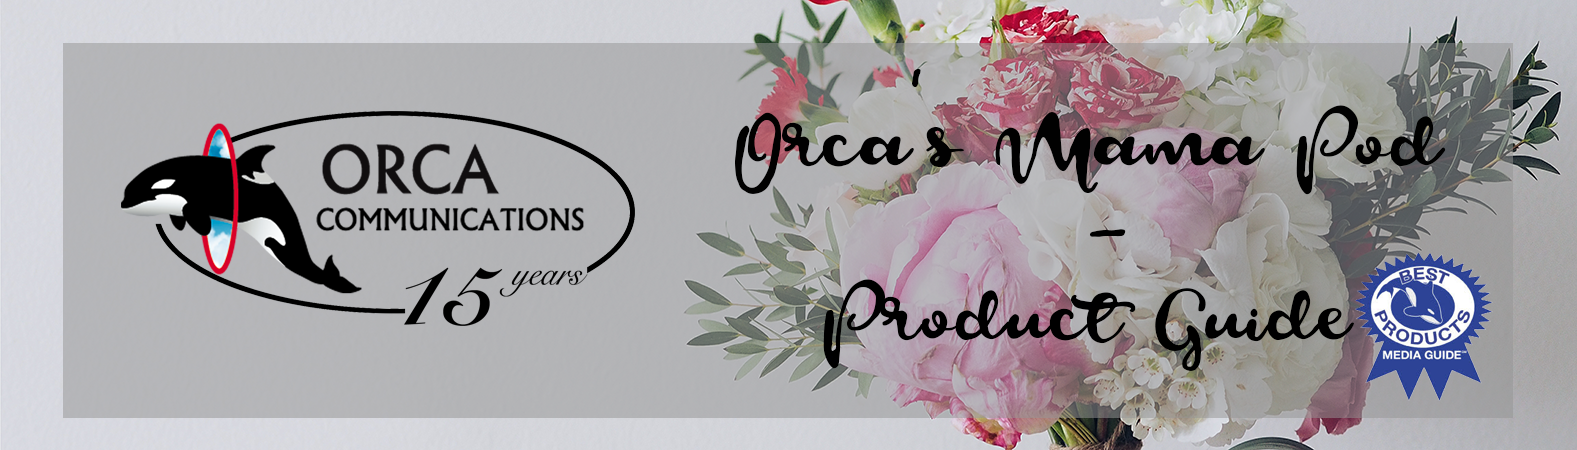 Orca mother's day product guide banner